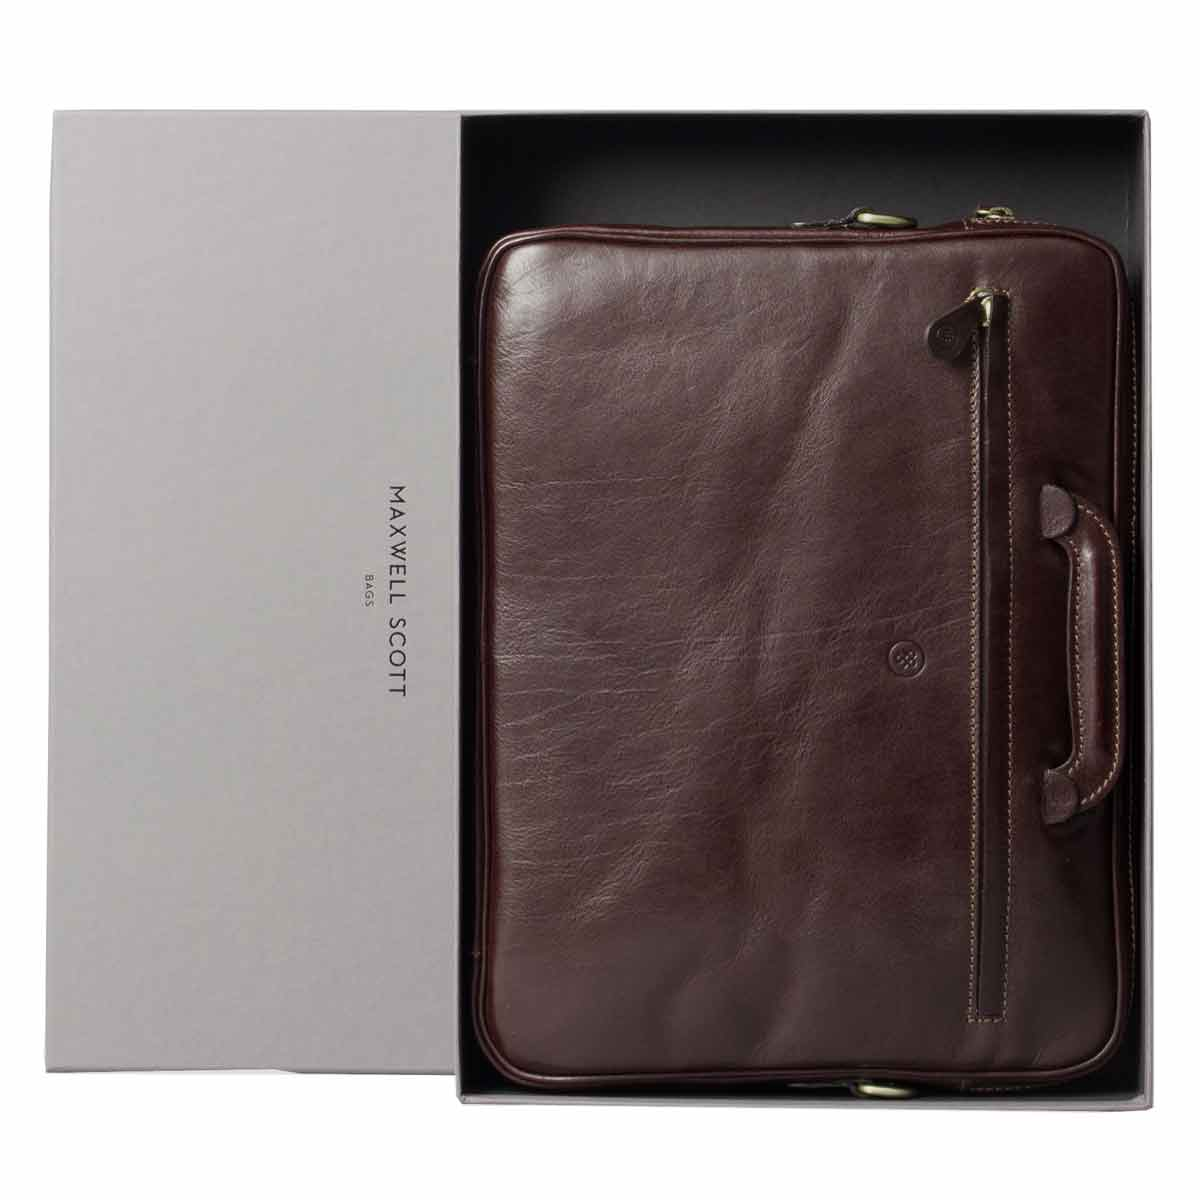 Image 7 of the 'Tutti' Black Veg-Tanned Leather Document Folio